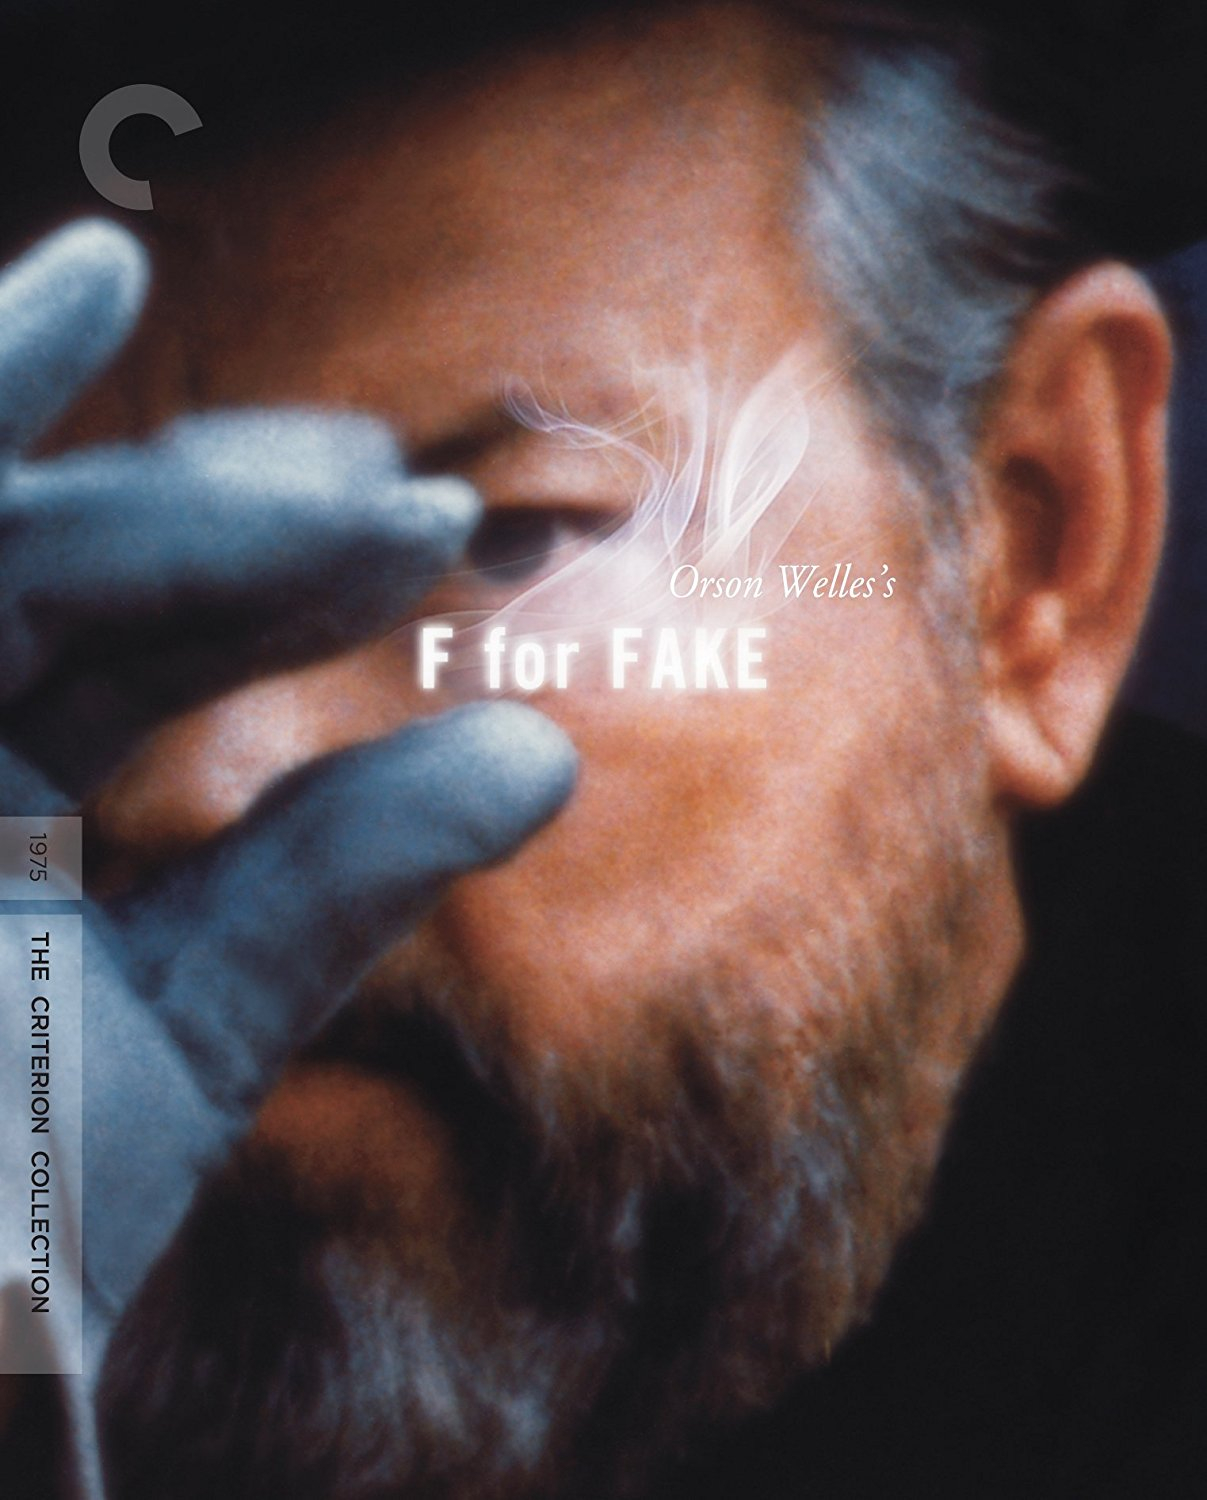 Buy F for Fake (Blu-ray)